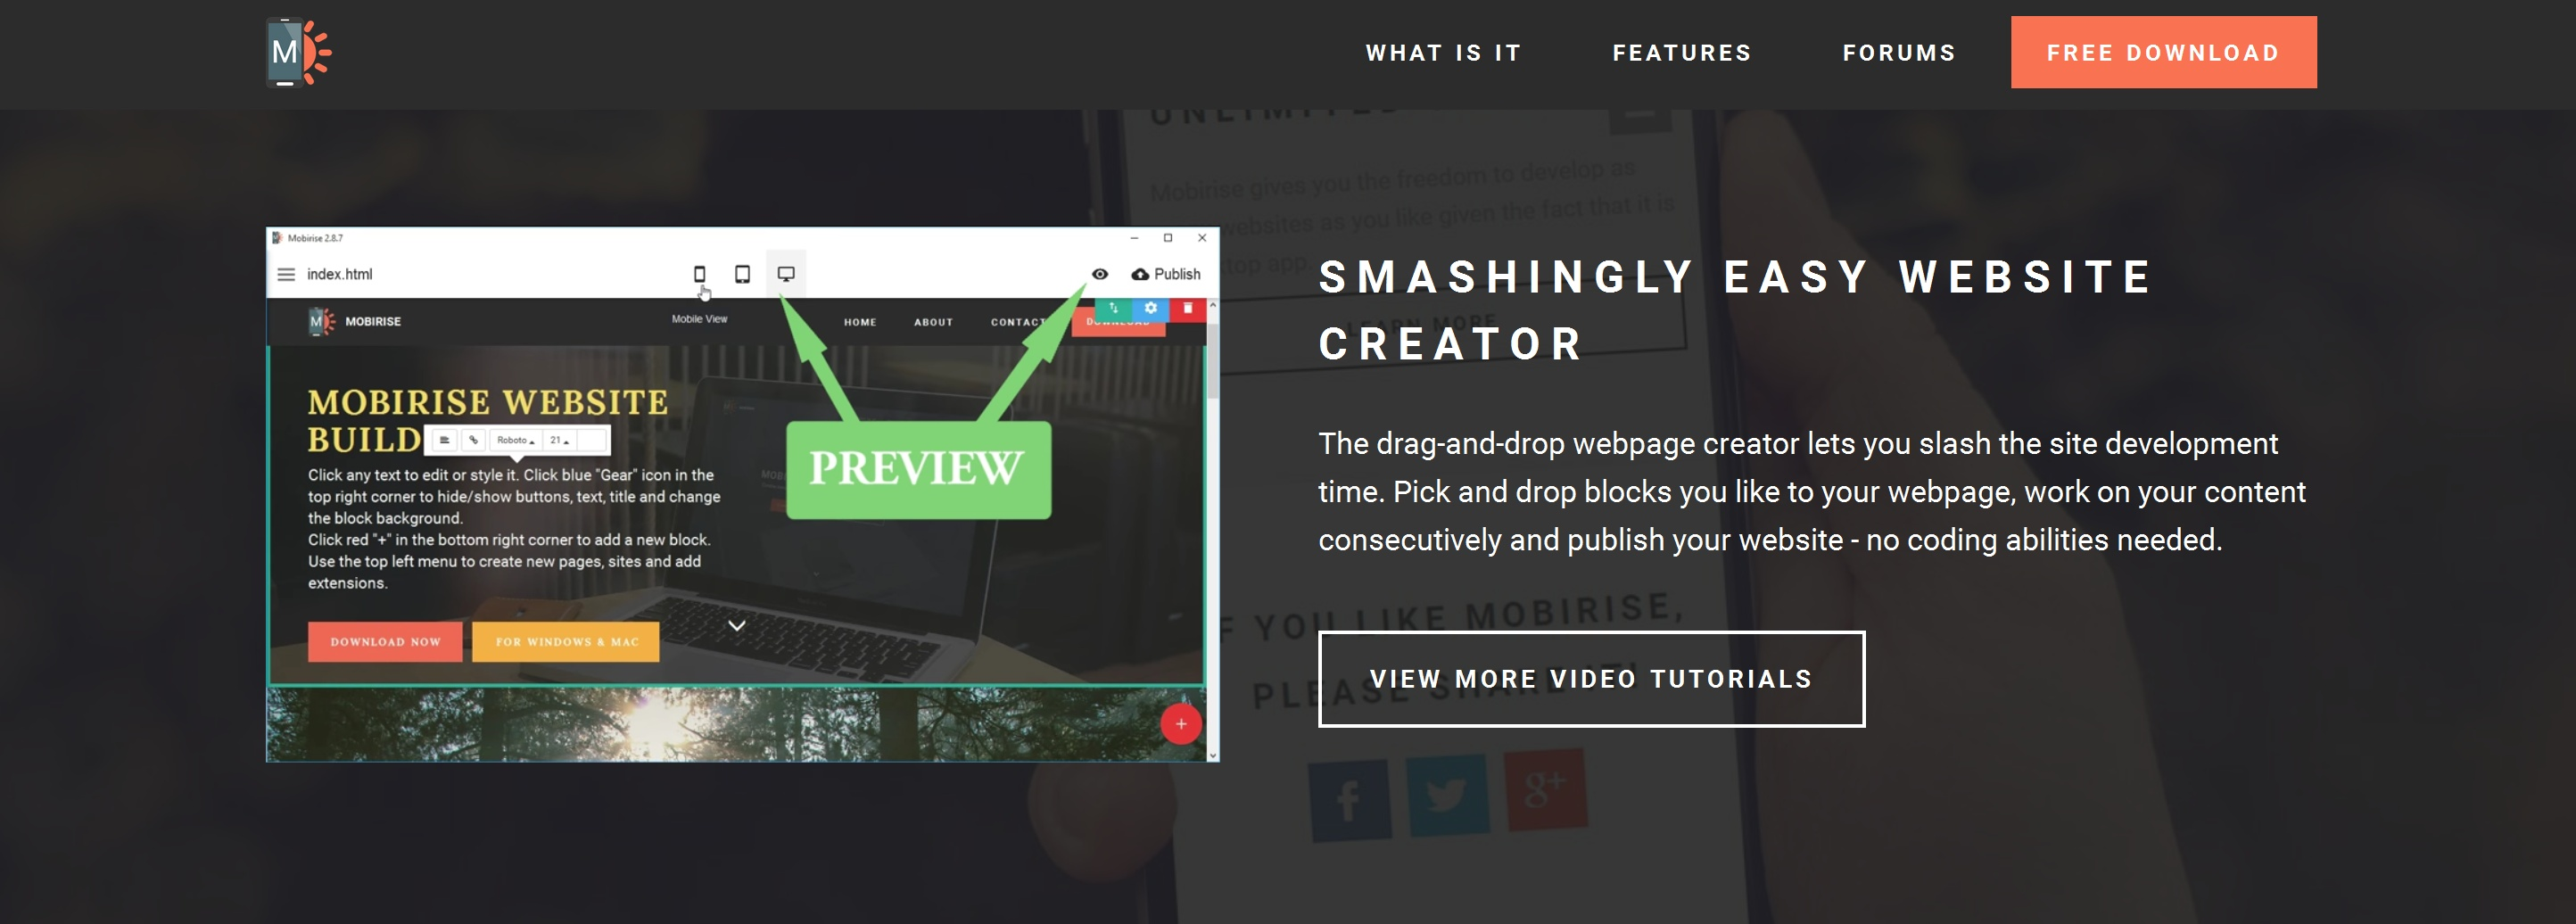 Best Simple Website Creator